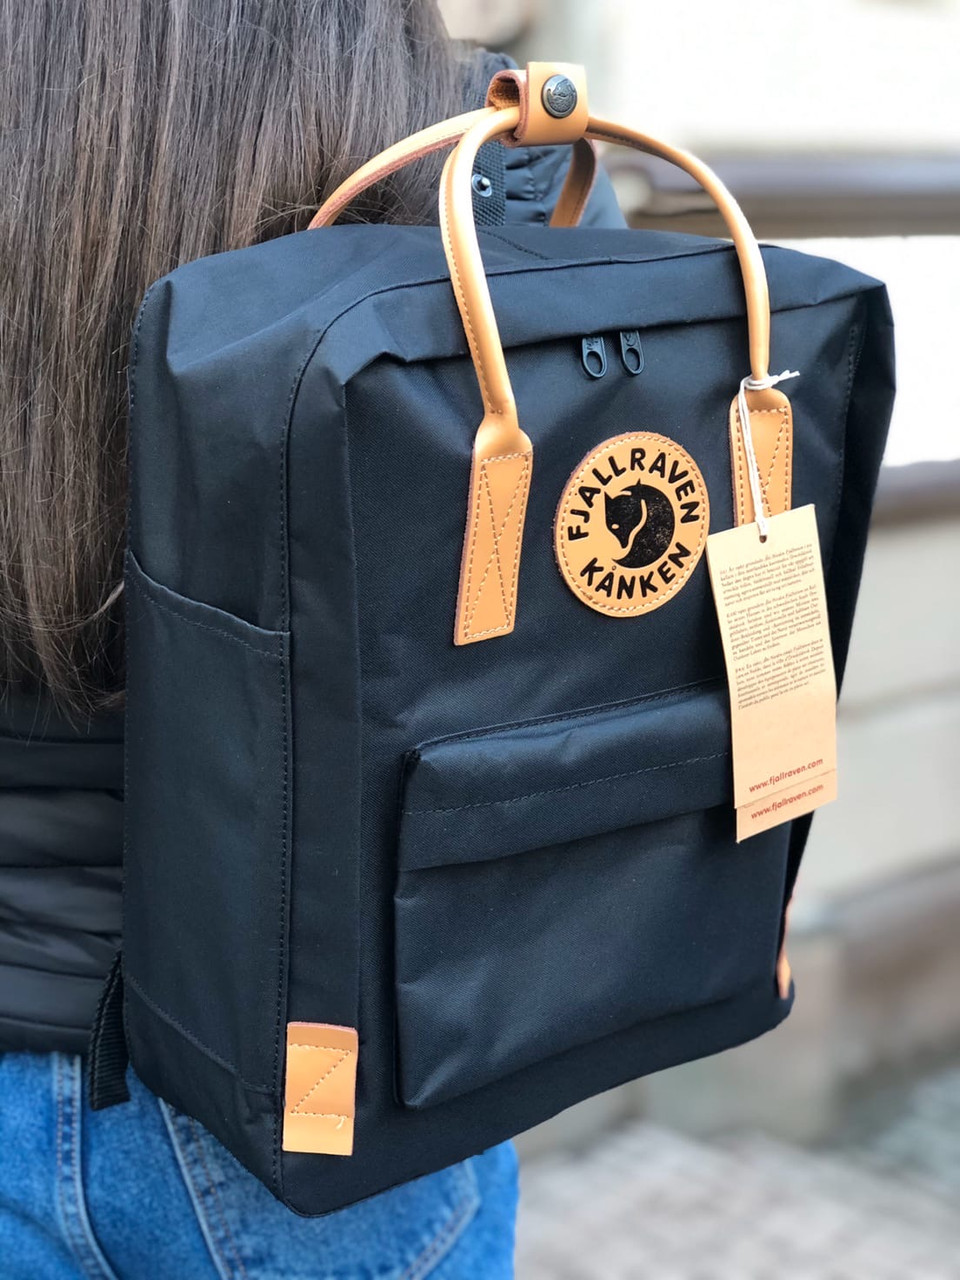 Рюкзак Fjallraven Kanken Black/brown, 16л, Материал: Vinylon F 100%